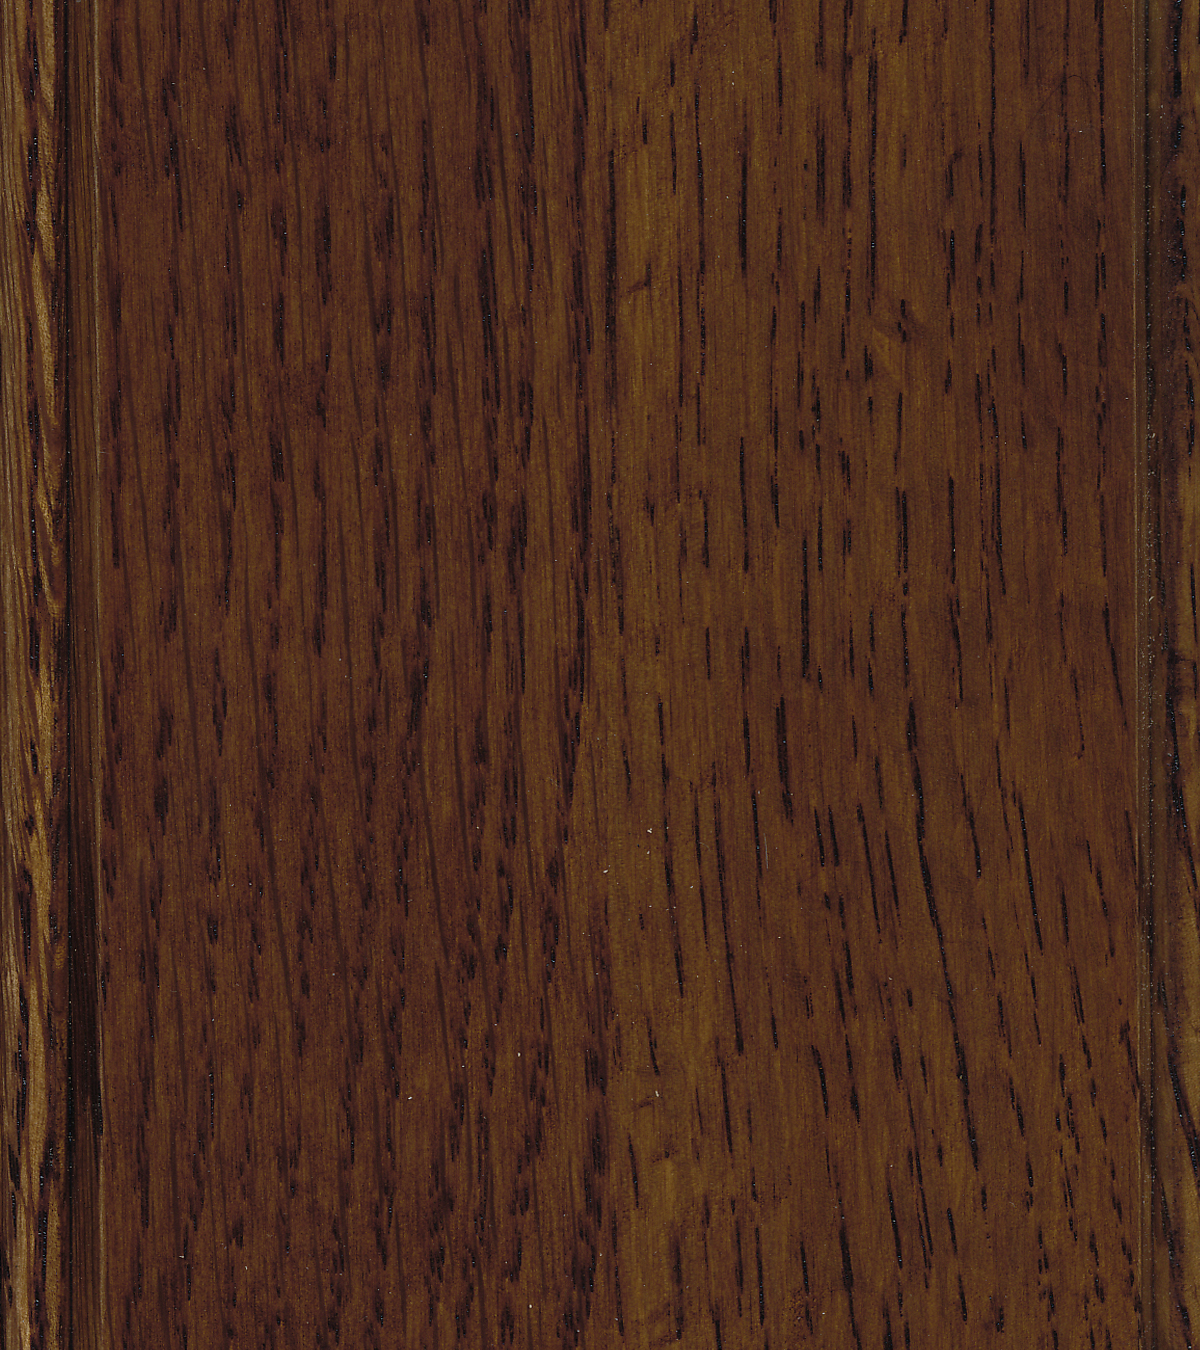 Quarter Sawn White Oak: Goldenbrn Qtr Sawn